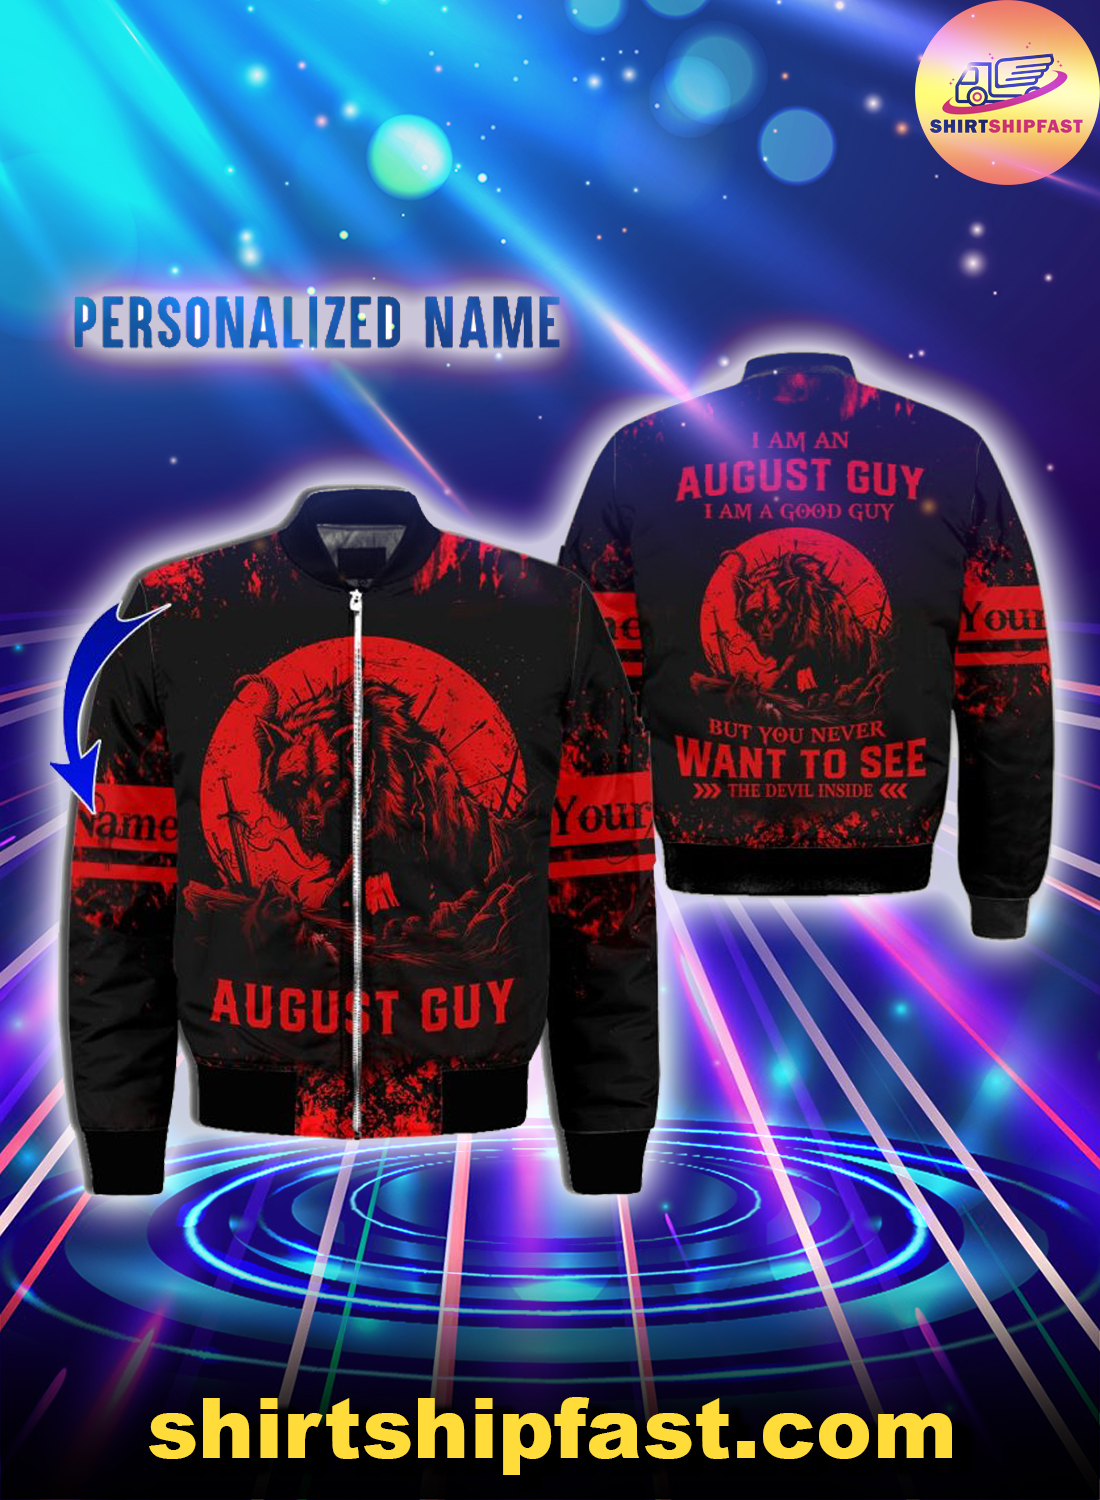 Personalized name I am a August guy I am a good guy but you never want to see the devil inside 3d bomber